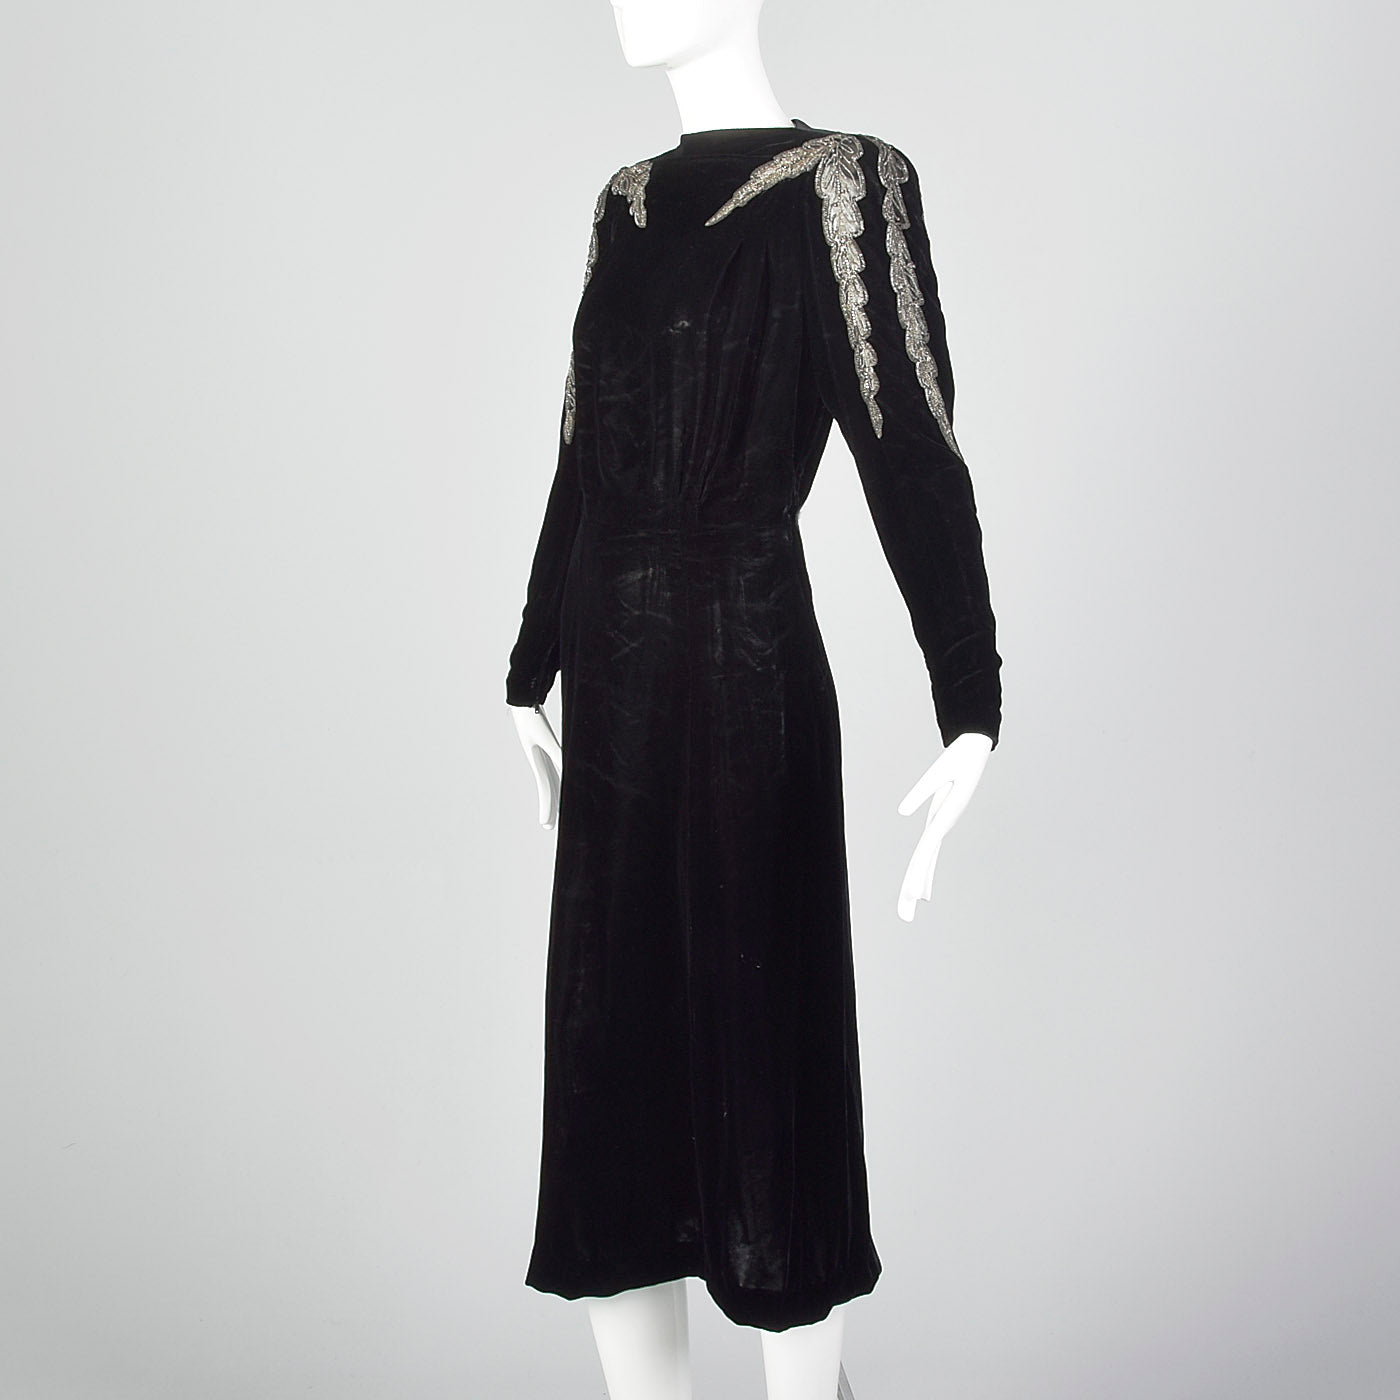 1940s Black Velvet Dress with Sheer Sleeve Design